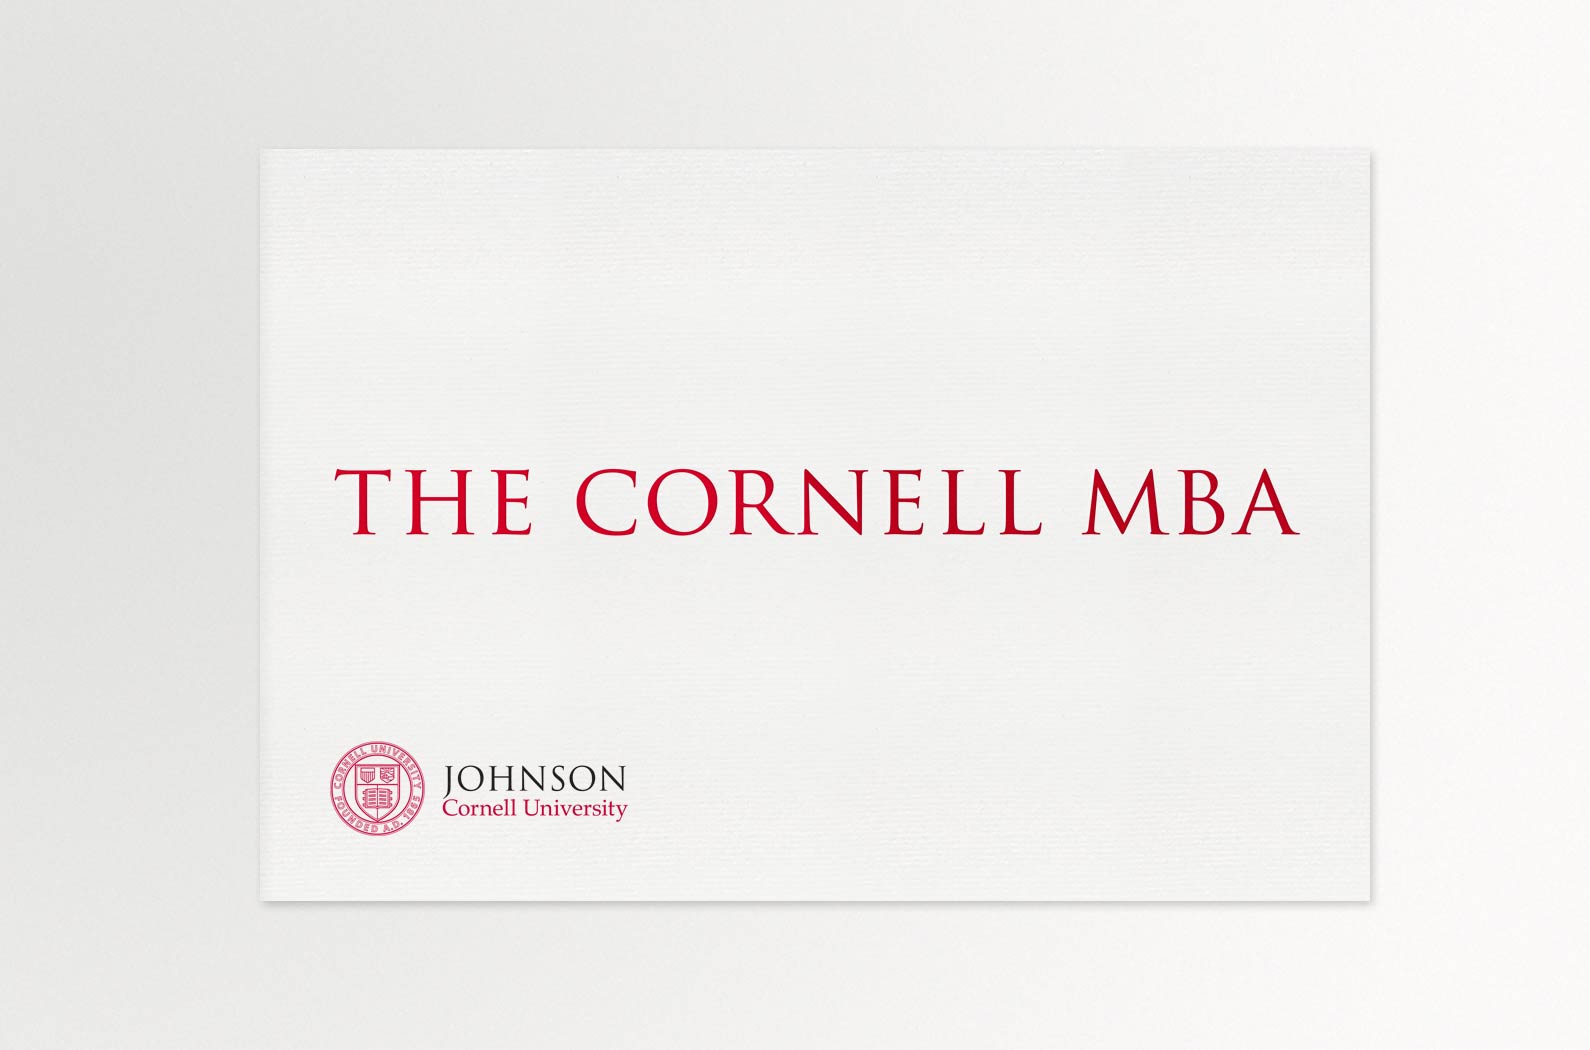 Johnson Cornell MBA Viewbook Cover